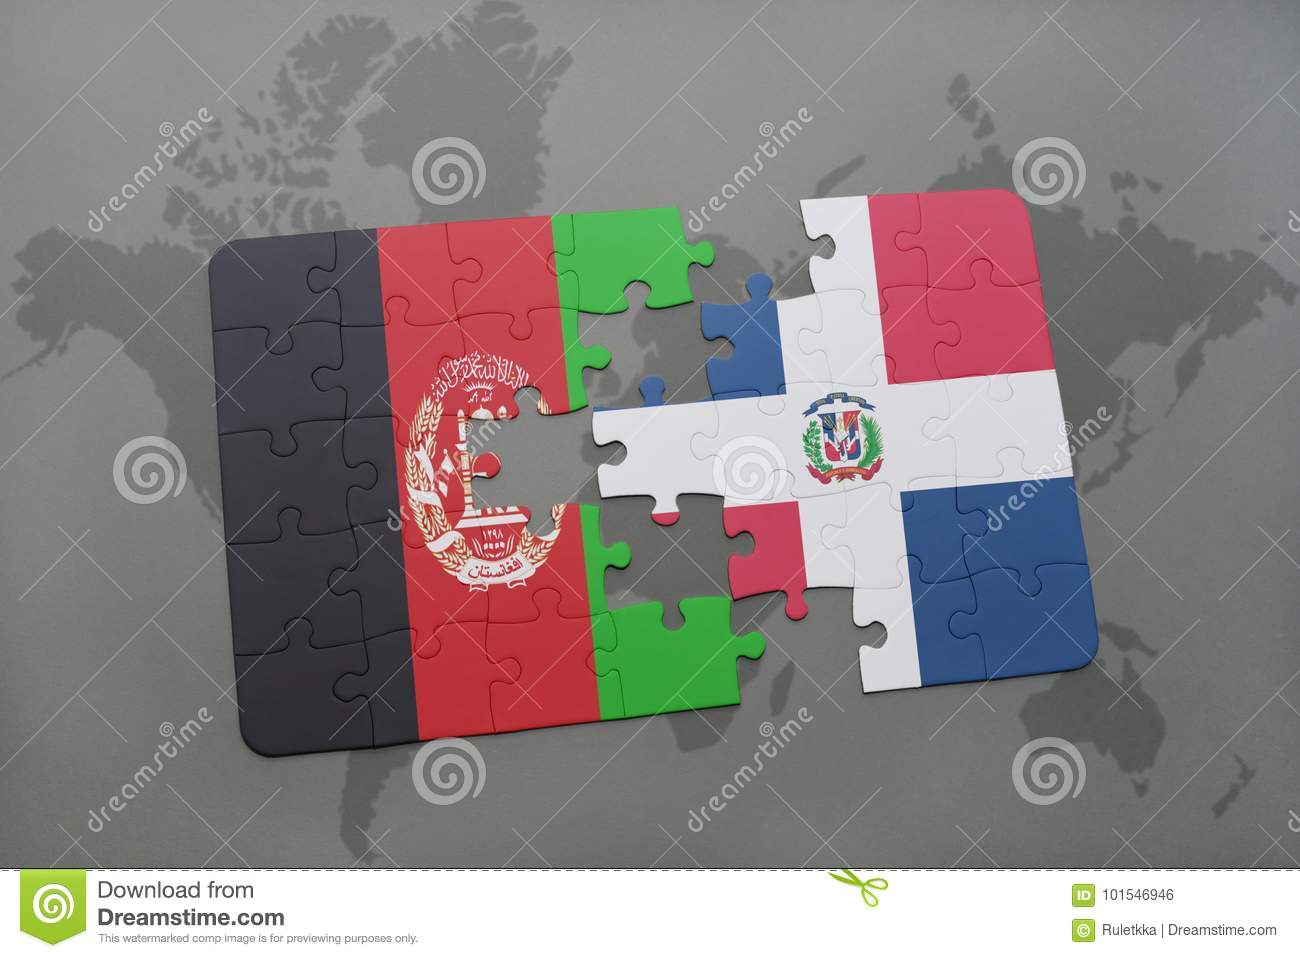 Where Is The Dominican Republic On A World Map.Puzzle With The National Flag Of Afghanistan And Dominican Republic